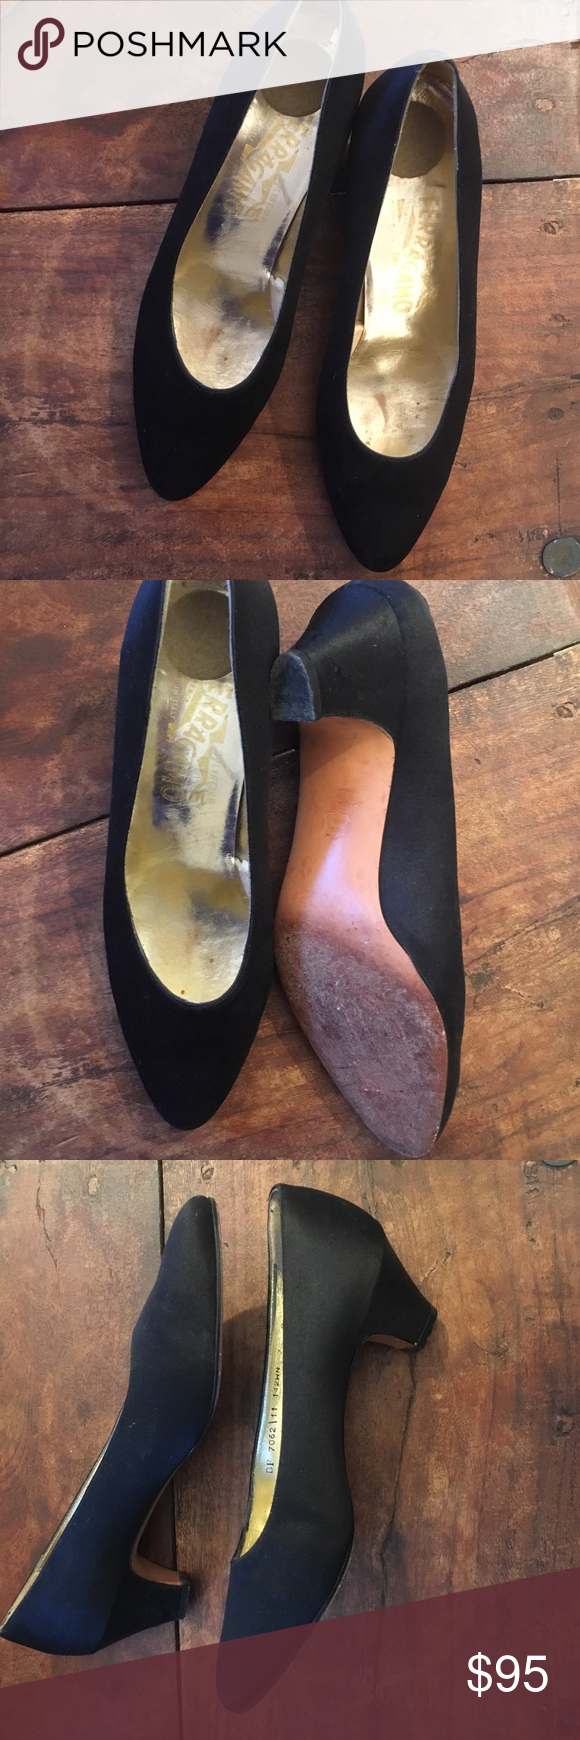 Vintage Ferragamo satin pumps Classic and timeless satin Ferragamo pumps size 7B. Looks equally great with dresses and skinny jeans. A great staple shoe! Salvatore Ferragamo Shoes Heels